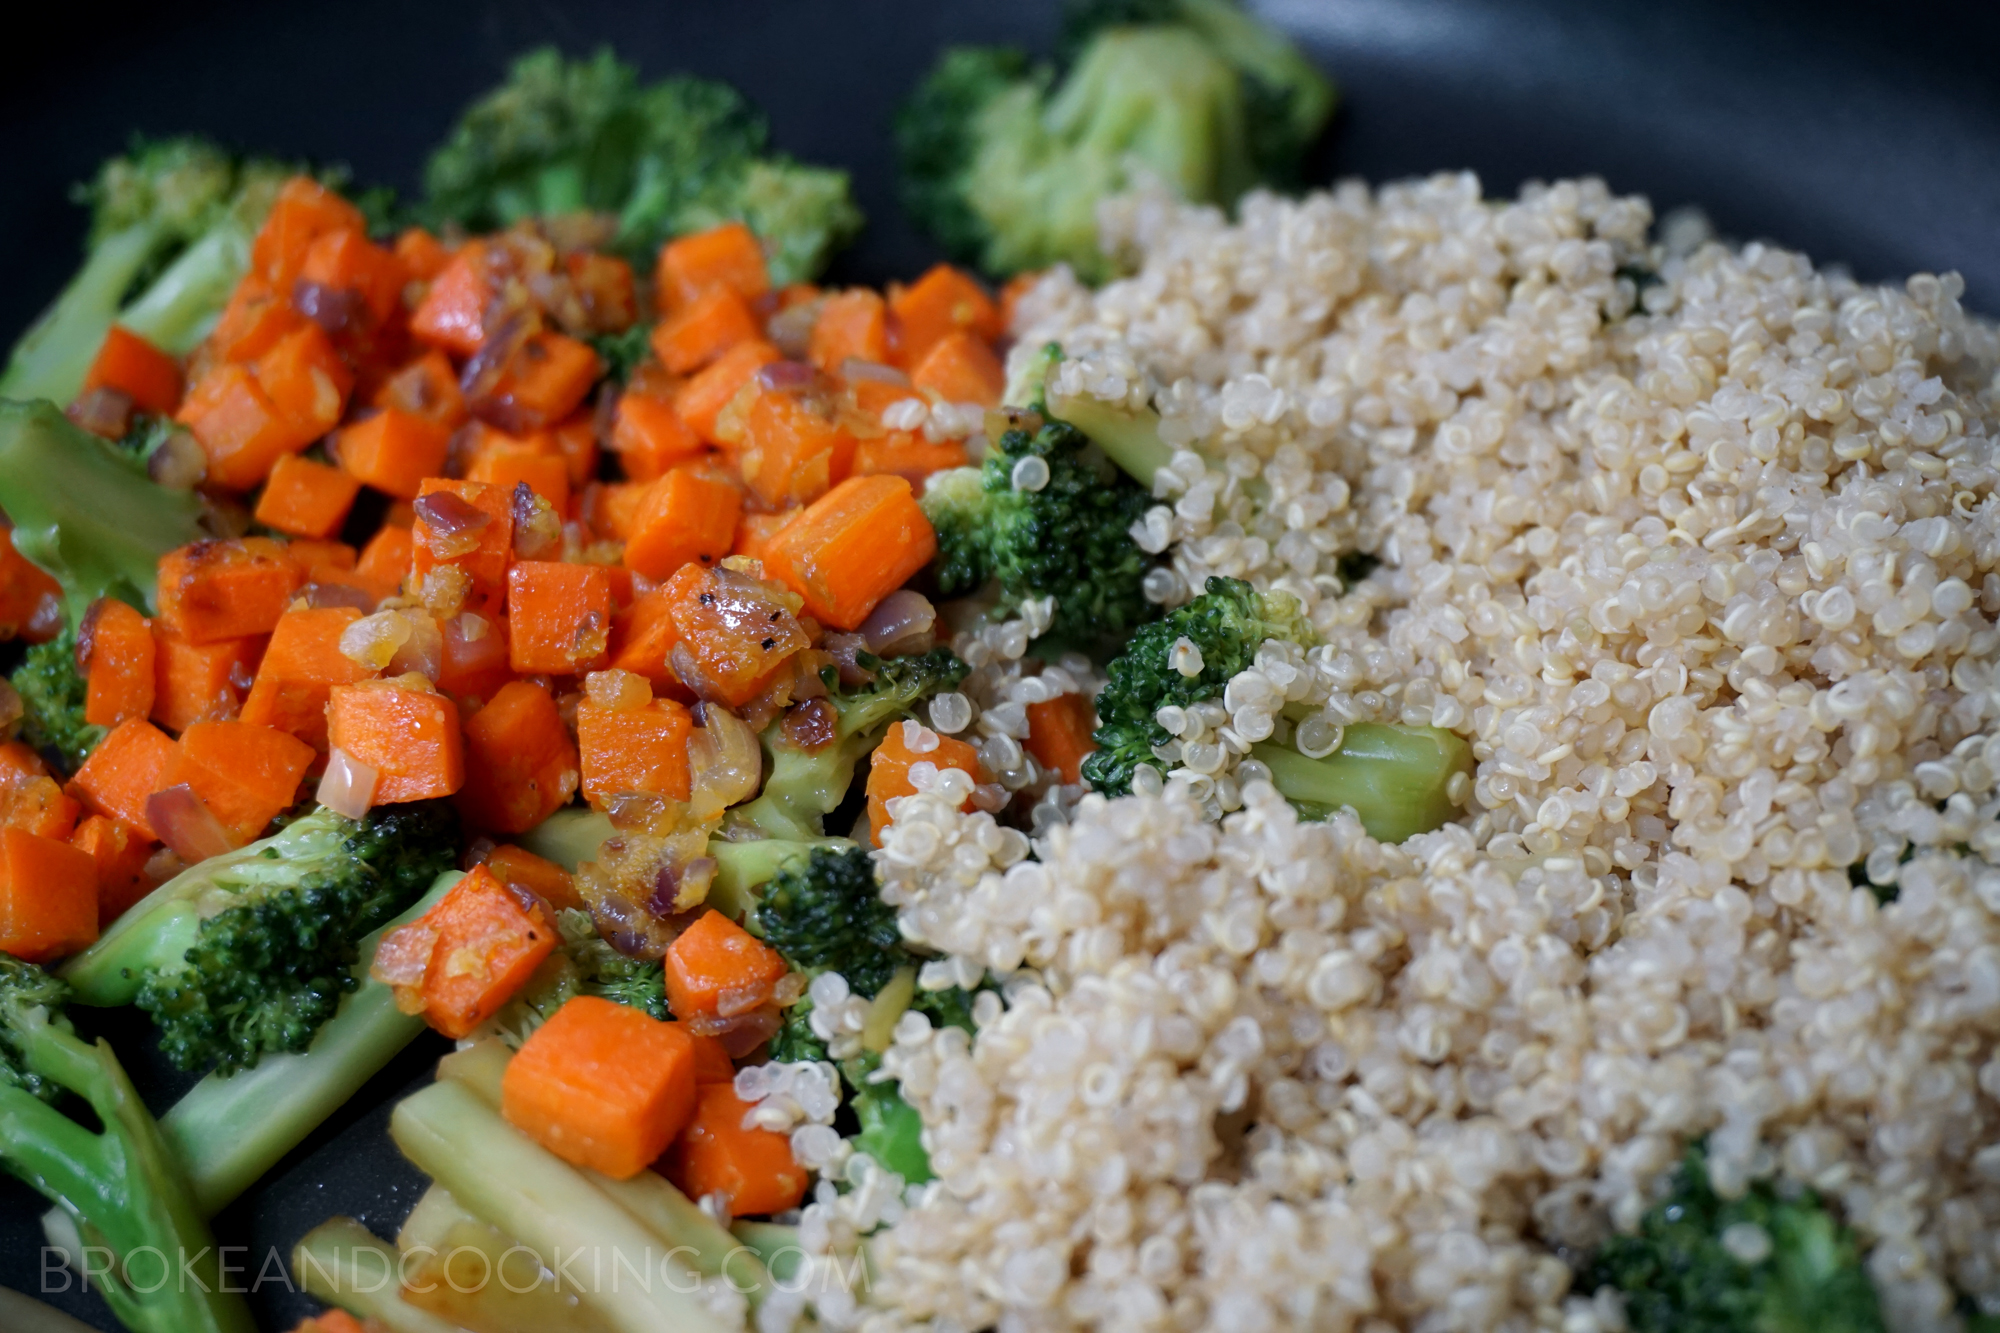 Broke and Cooking Quinoa Fried Rice 17